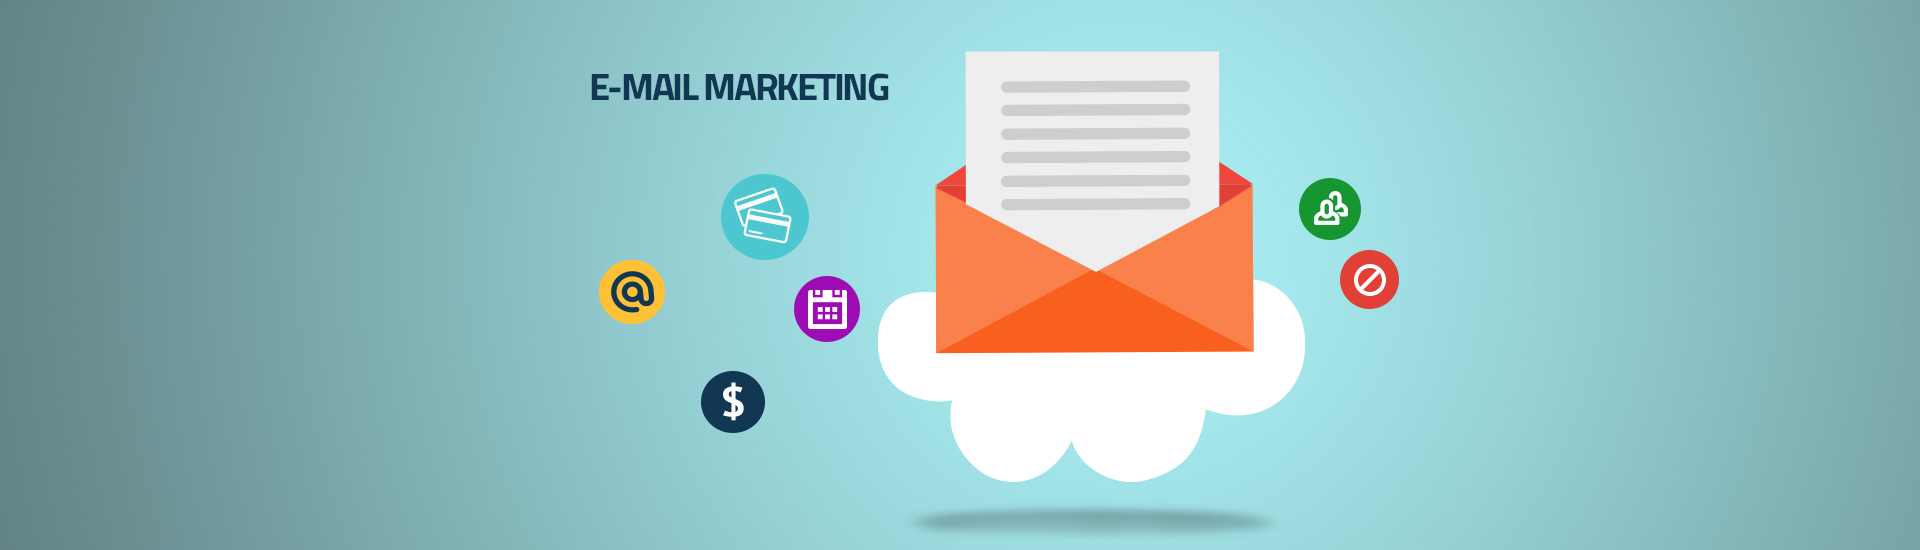 Importancia de tener el e-mail marketing